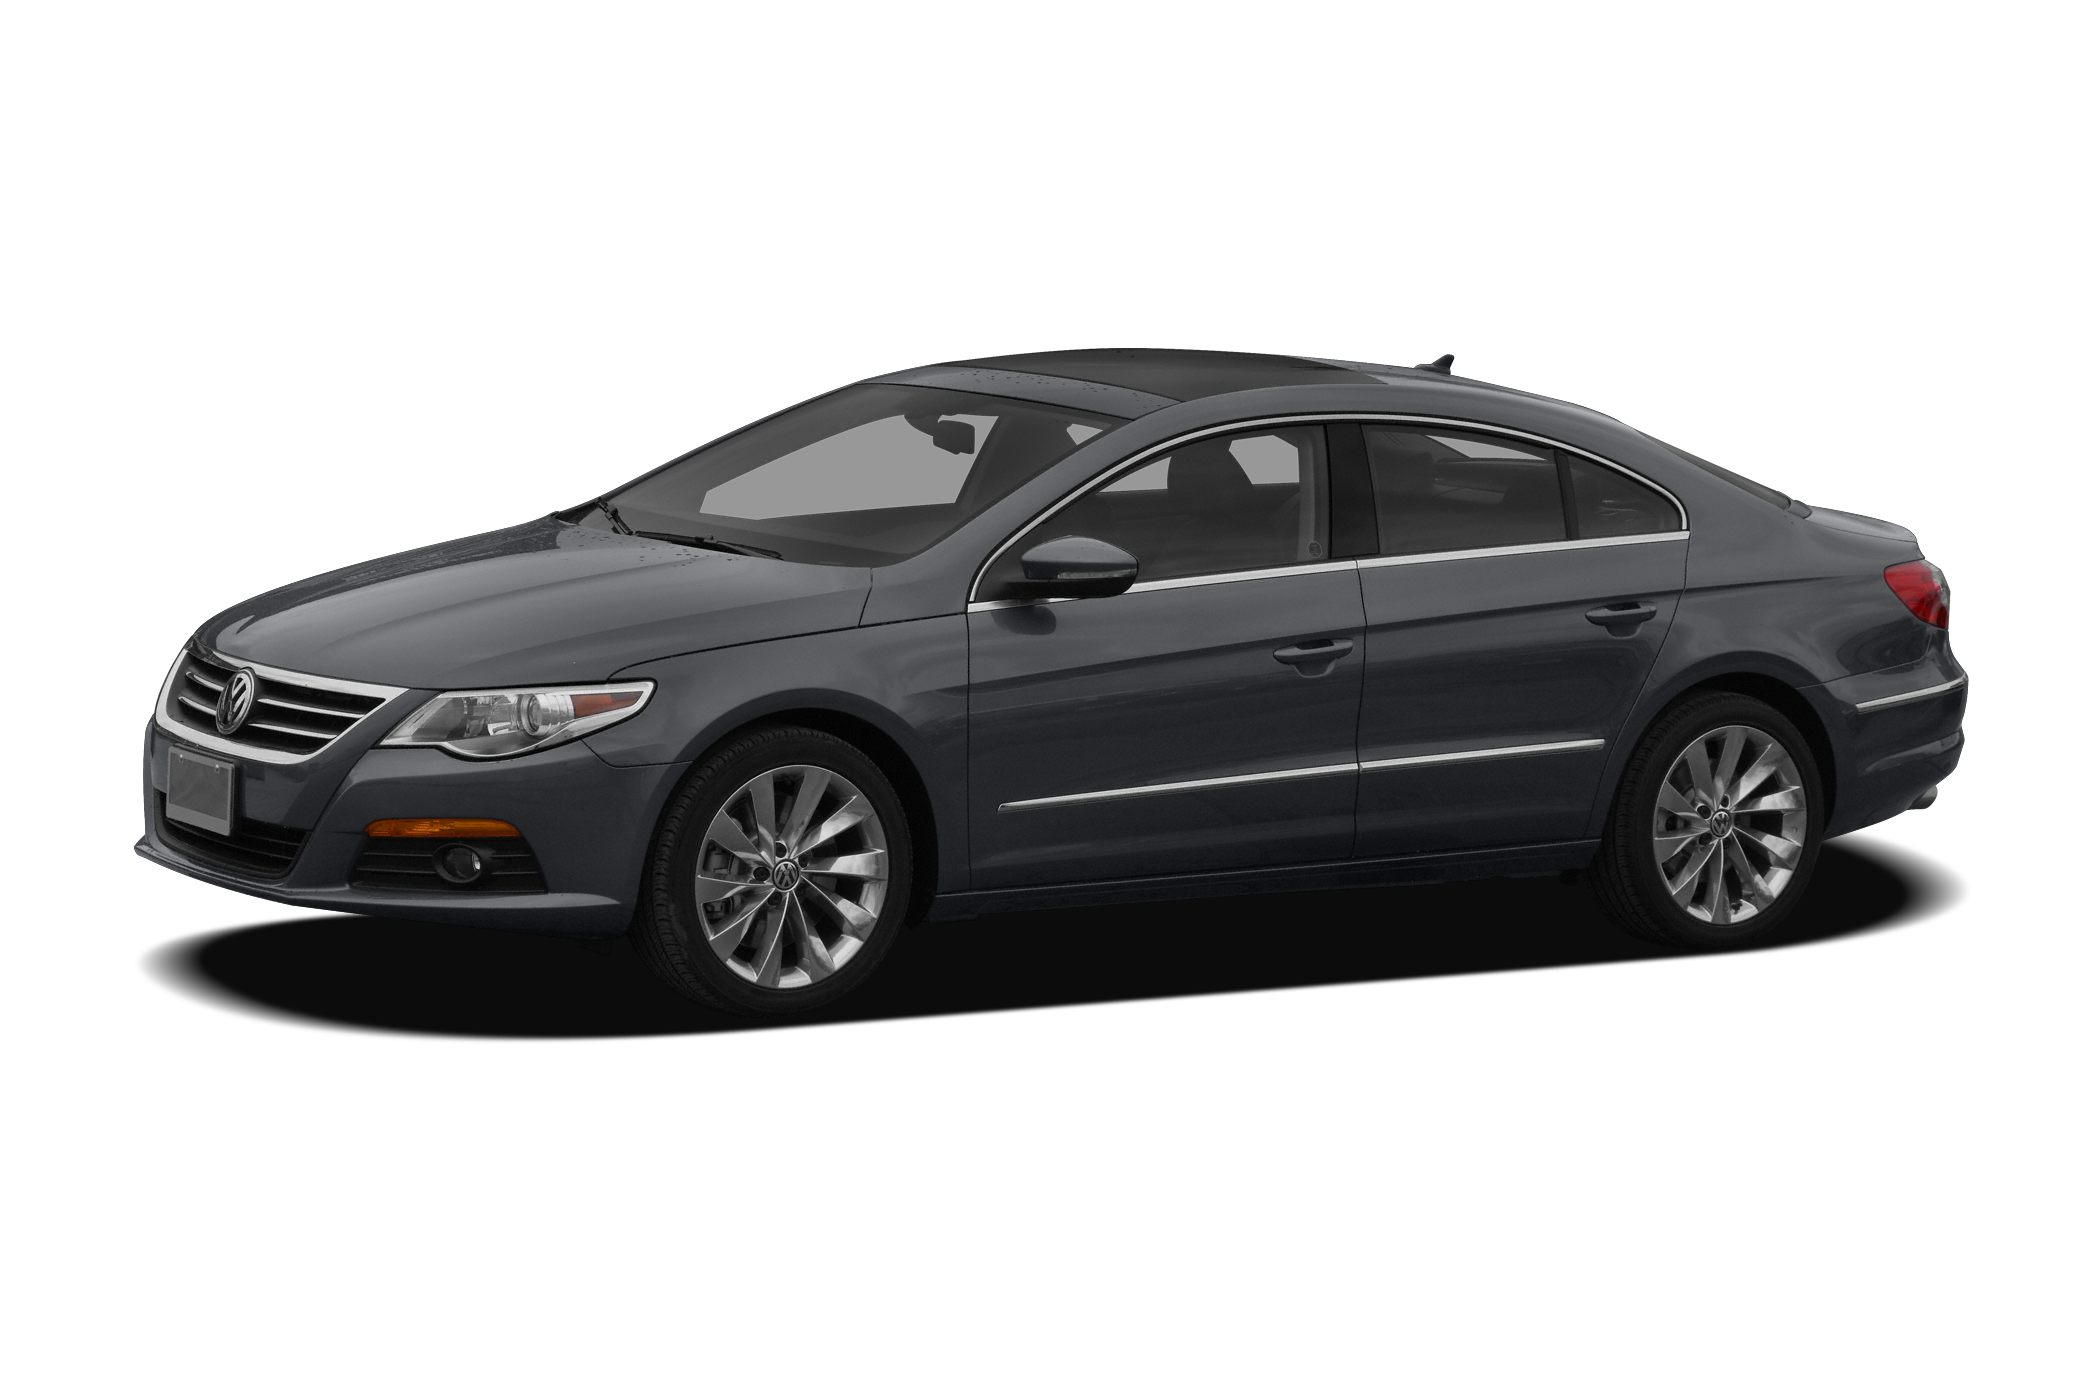 2011 Volkswagen CC